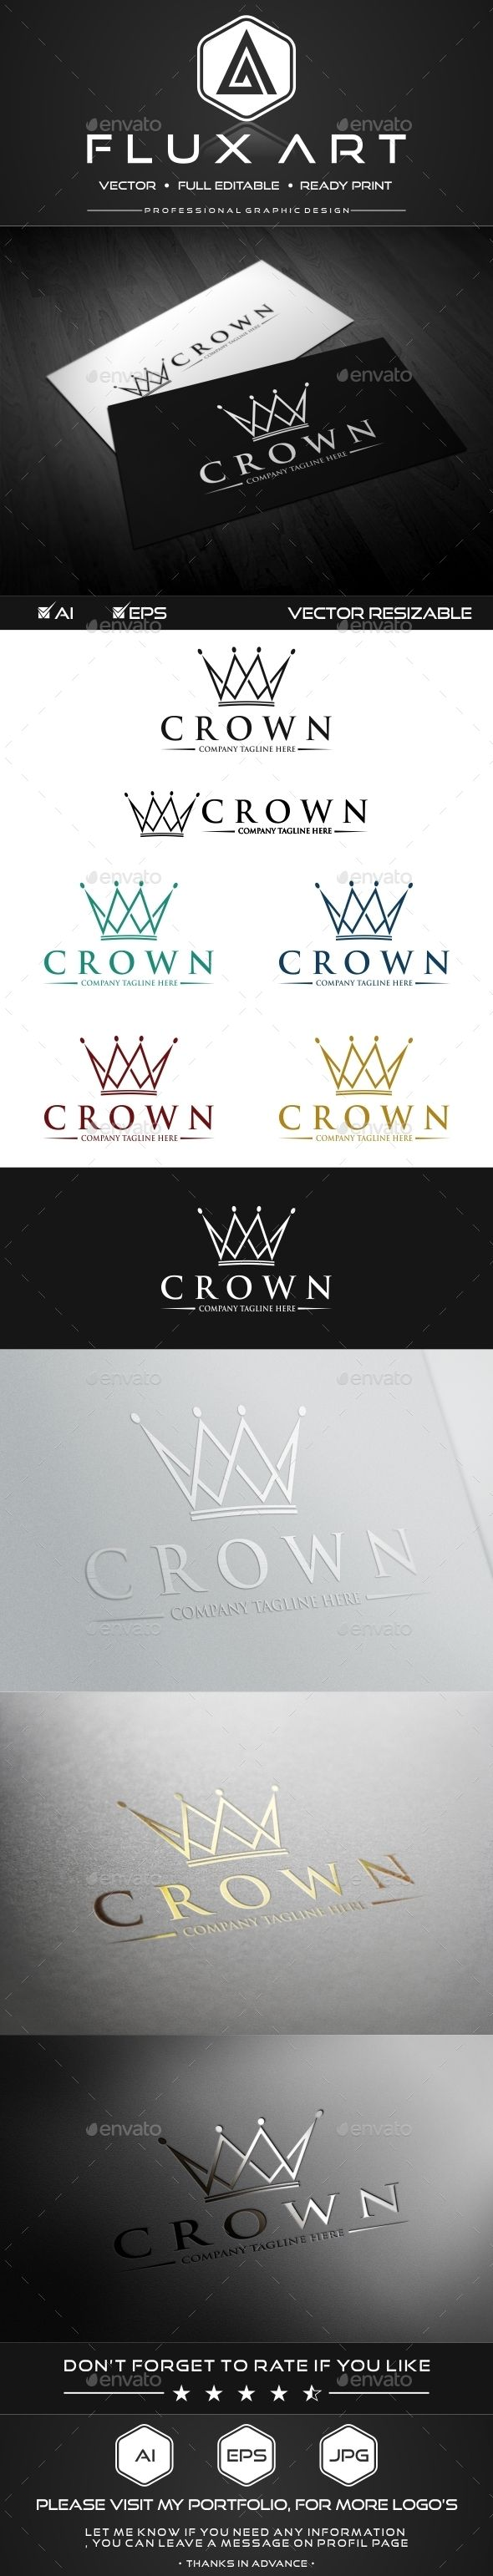 Royal Crown Logo 500 best Logo Templates